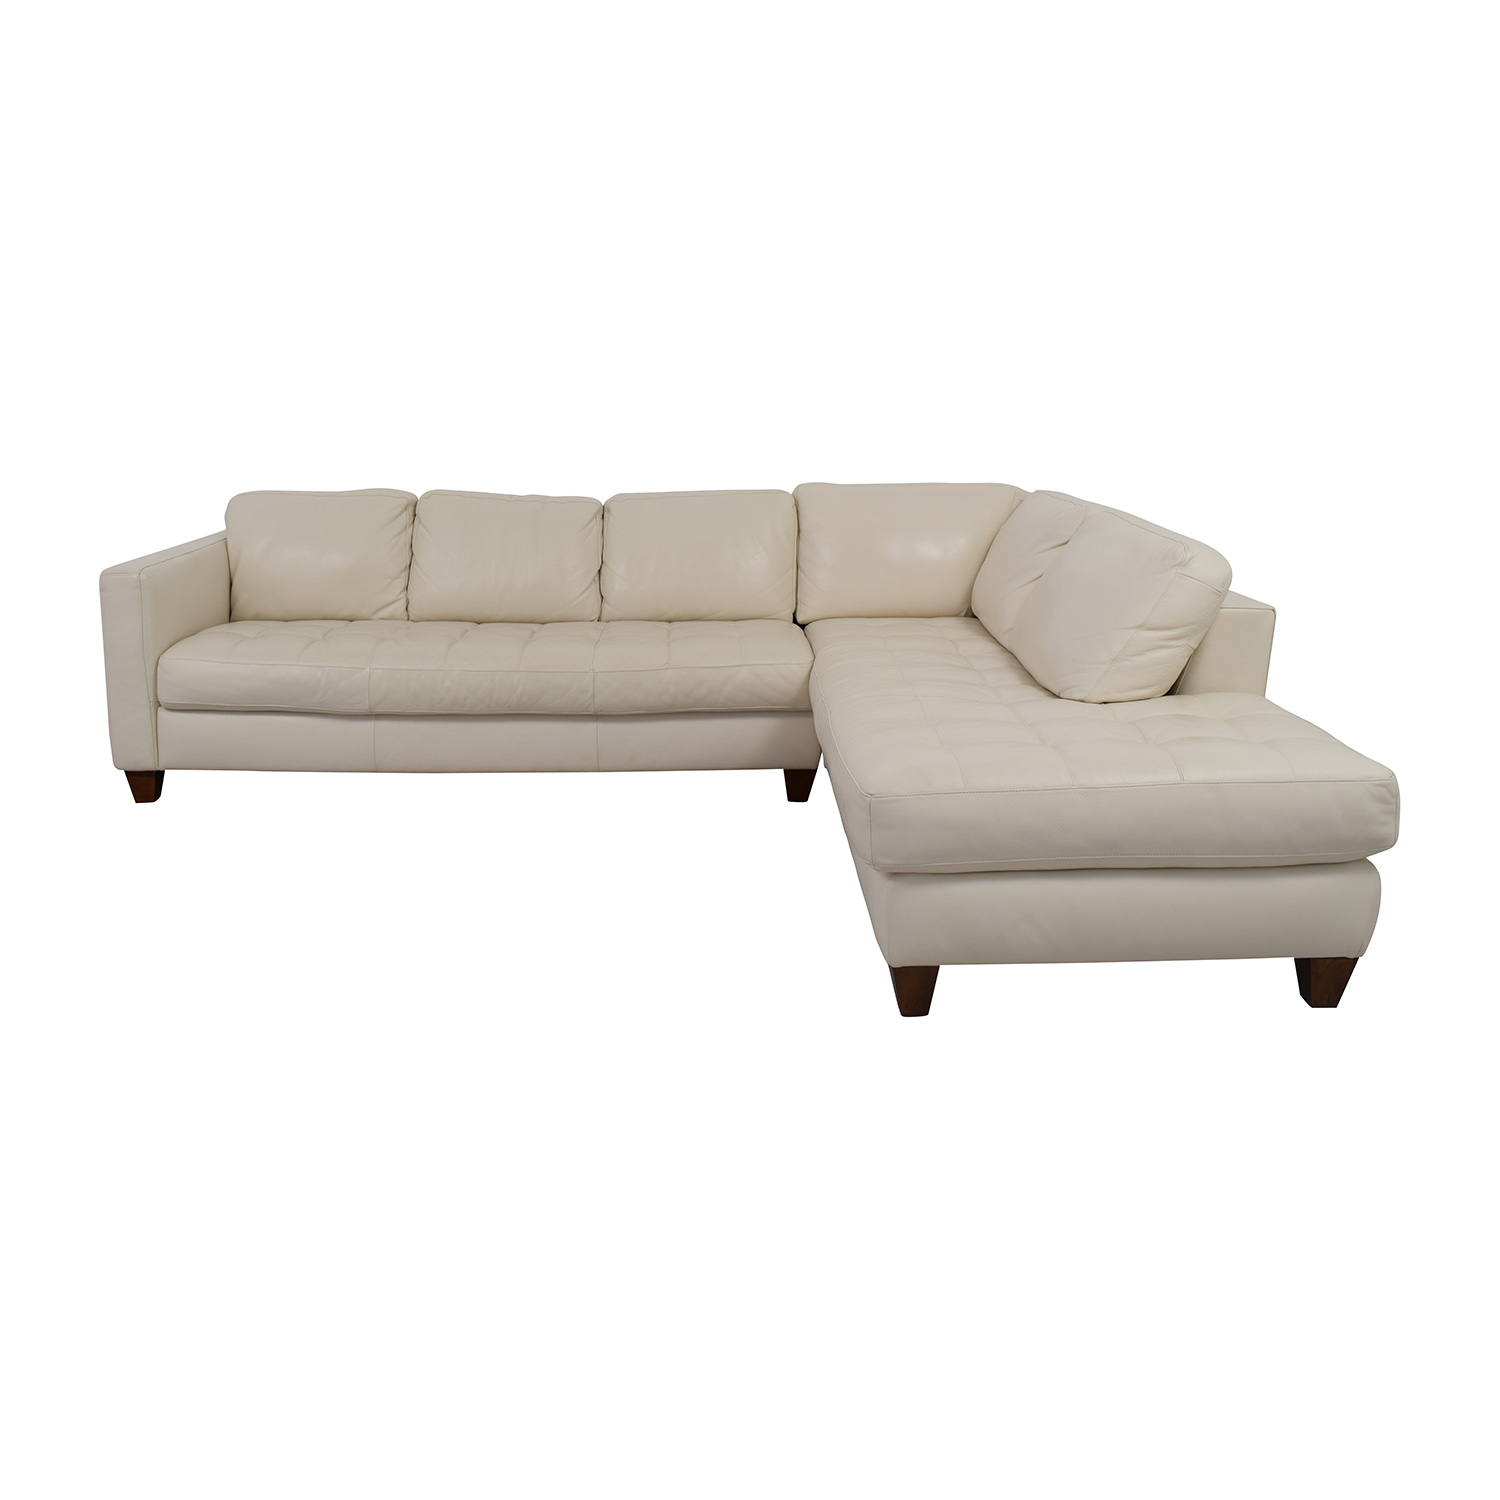 White Leather Couch 72 Off Macy S Macy S Milano White Leather Two Piece Sofa Sofas